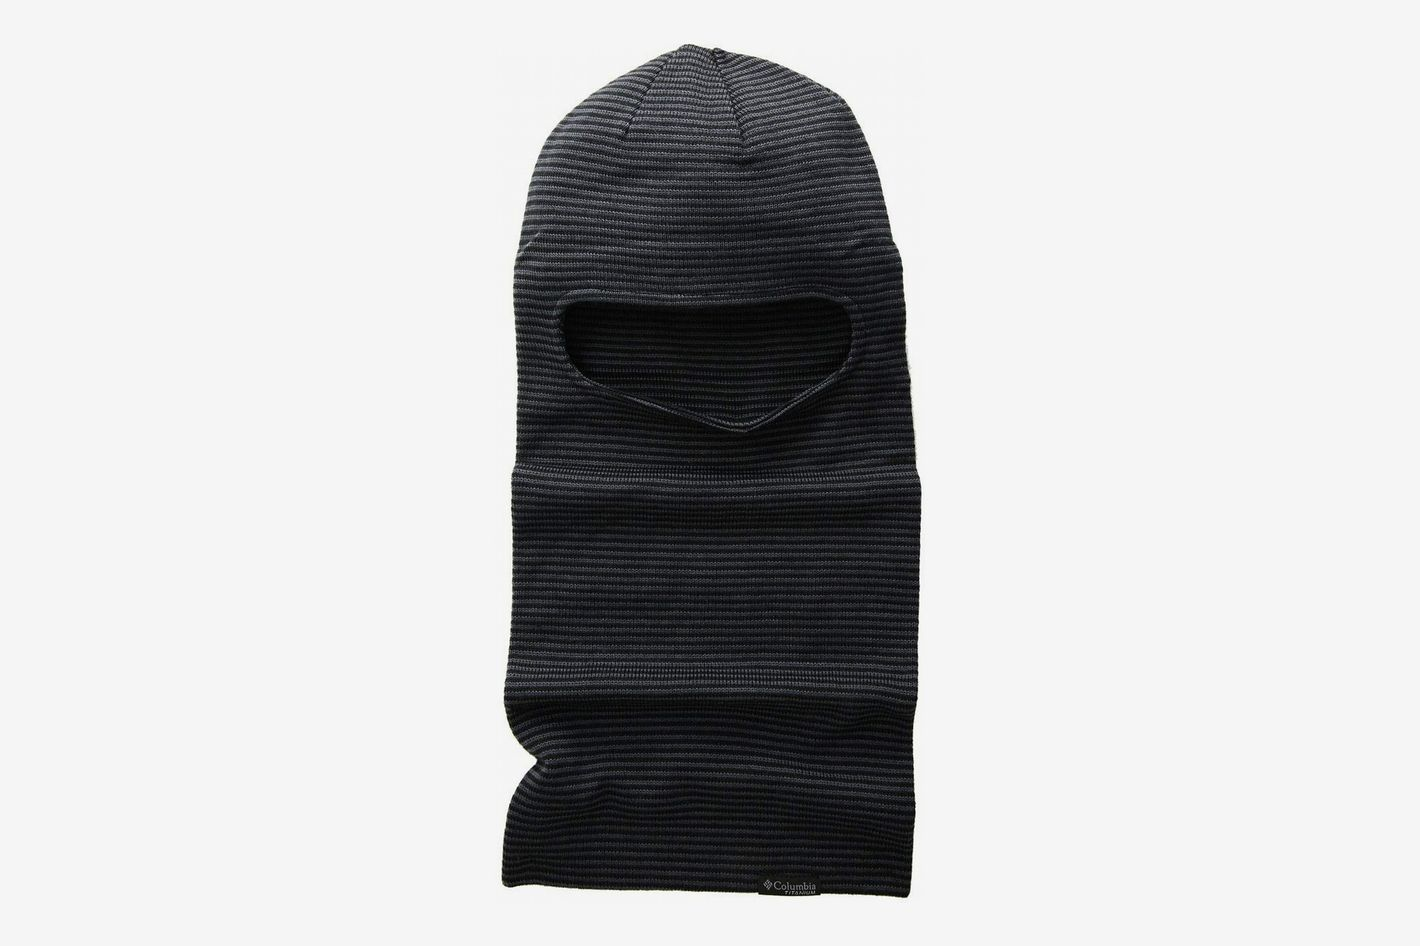 d0bd938c0828 The 8 Best Balaclavas and Ski Masks 2019